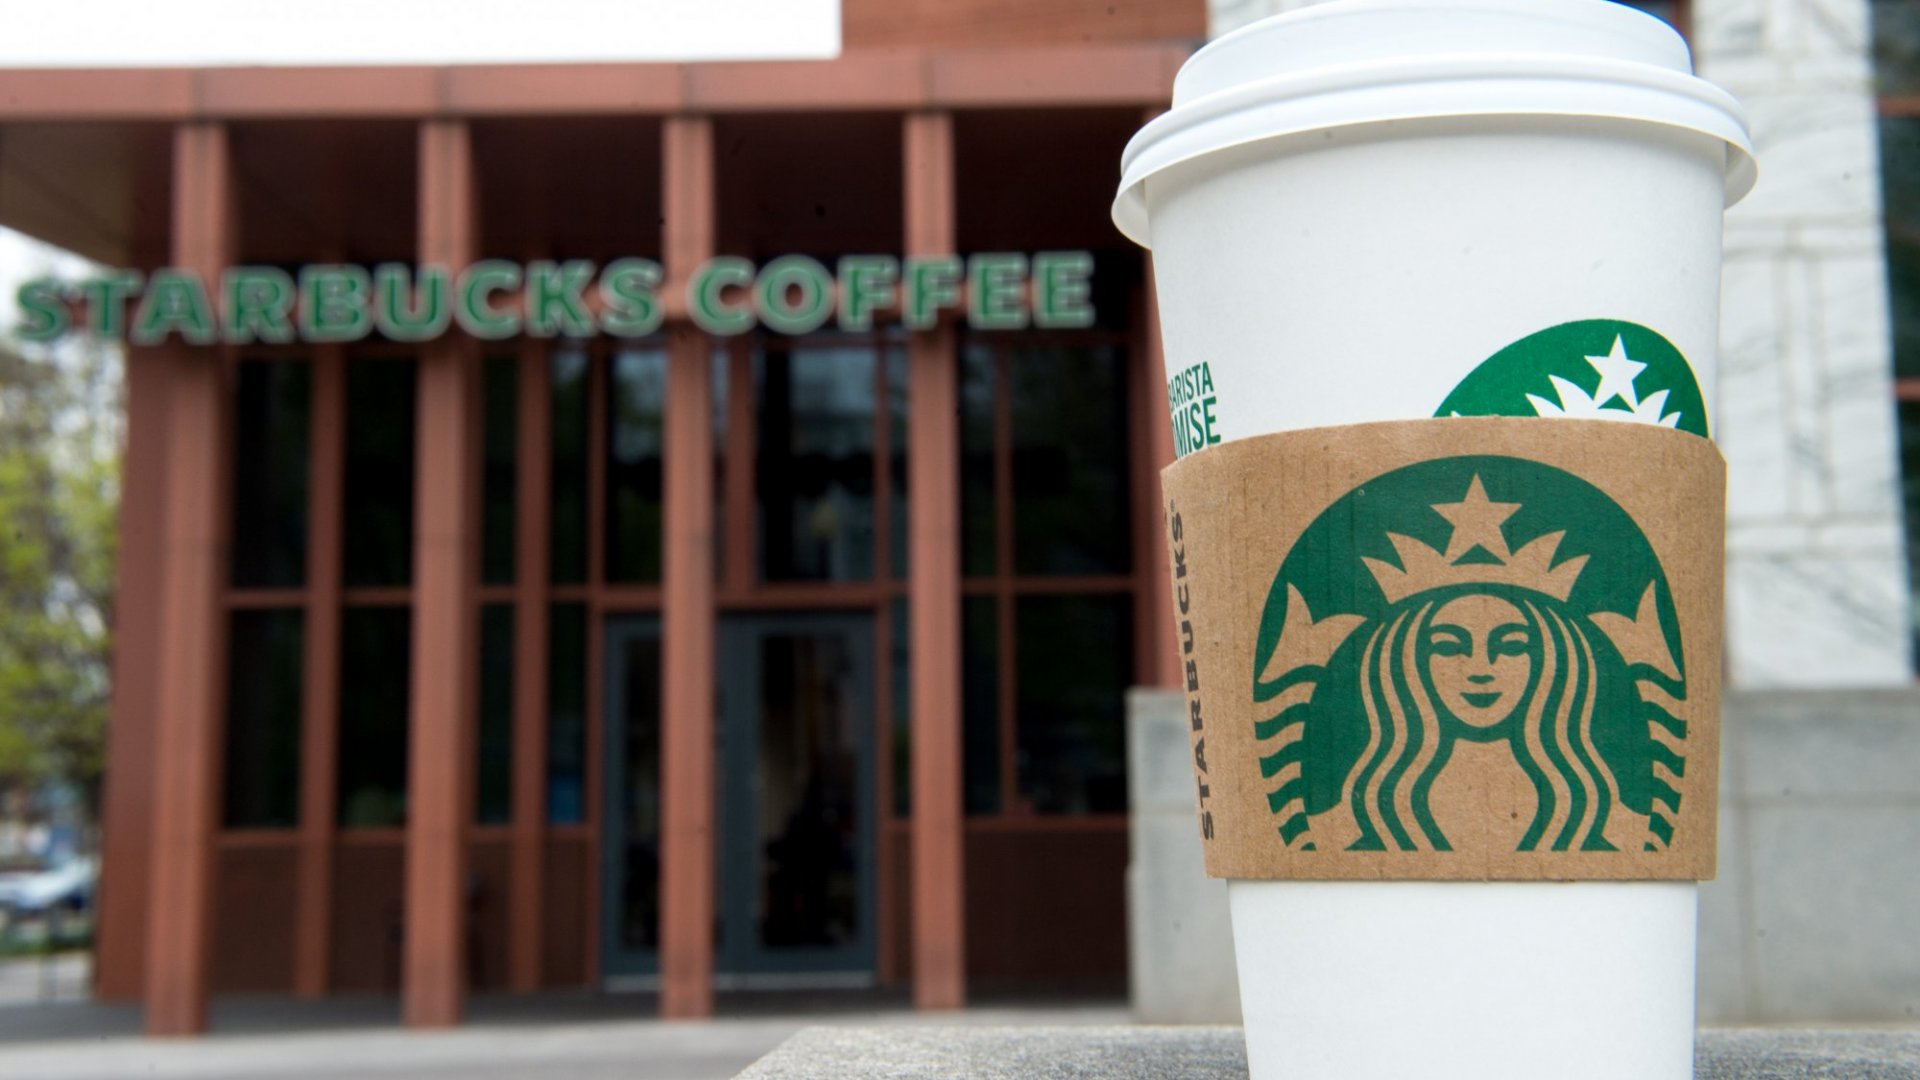 Move Over McDonald's. Starbucks Has a 'Free Starbucks for Life' Contest. (There's a Catch, of Course)